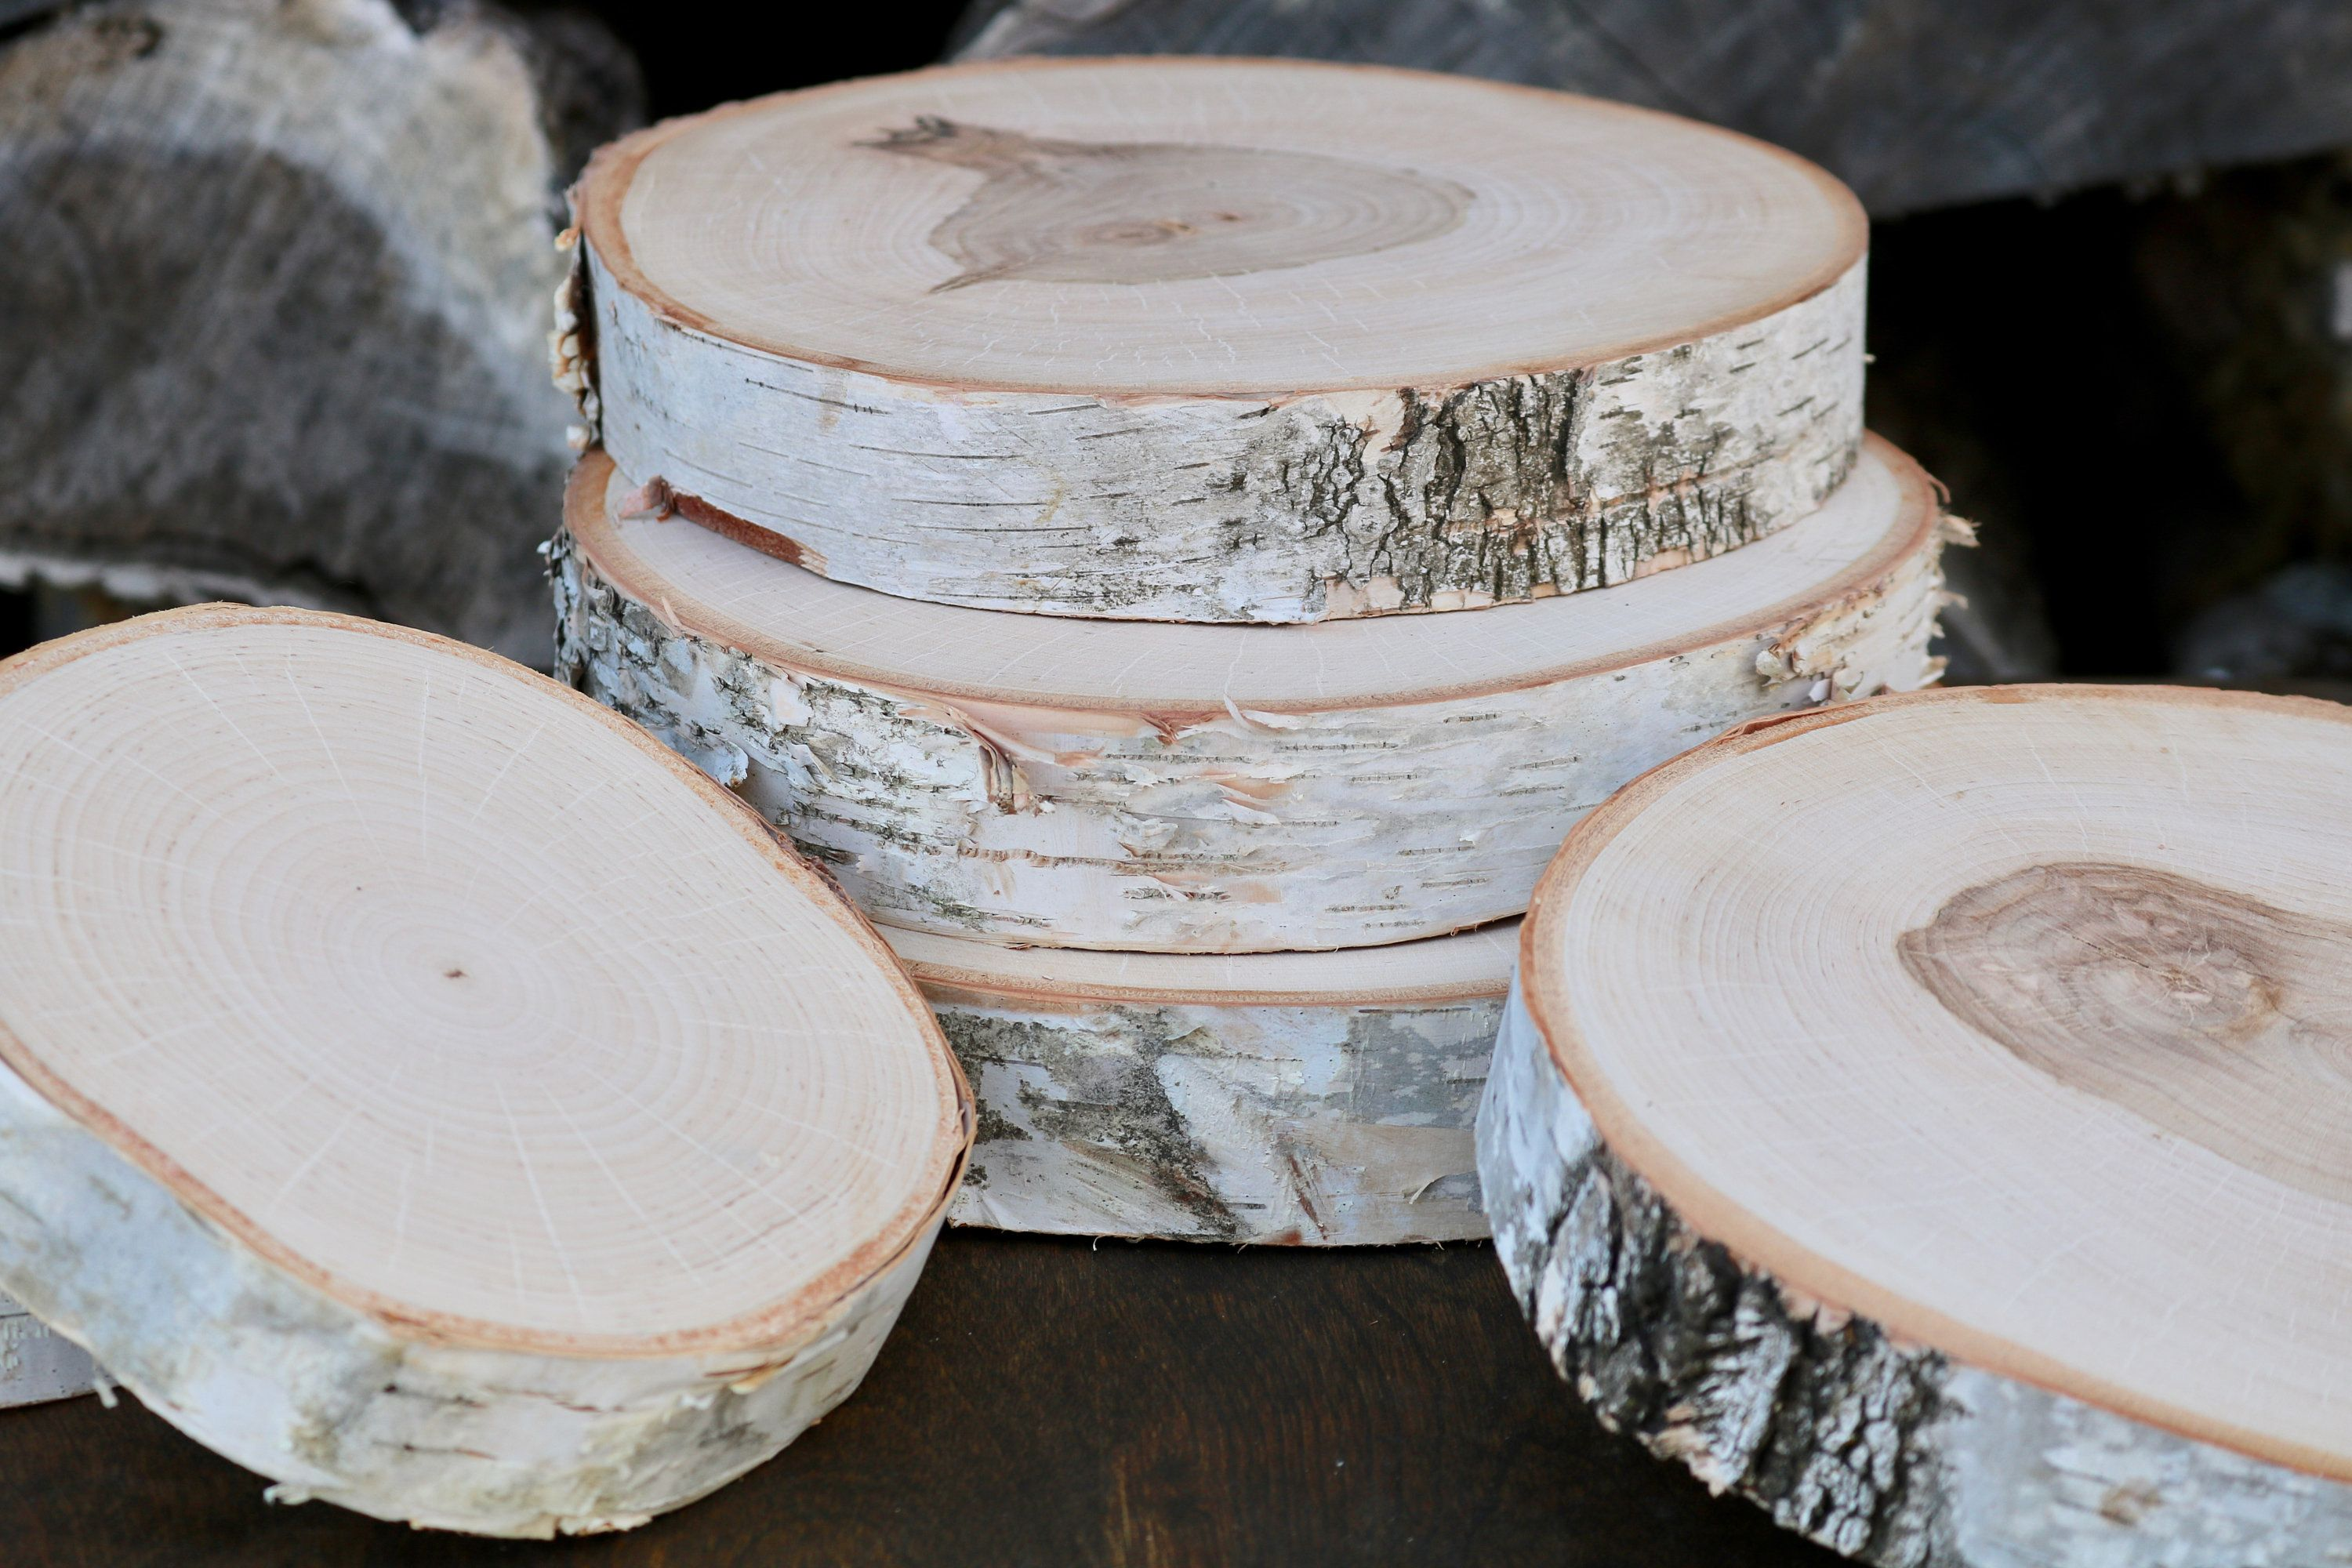 White Birch Slices Thick Wood Slices Tree Slices Natural Etsy In 2020 Wood Cake Stand Wood Slices Wood Slab